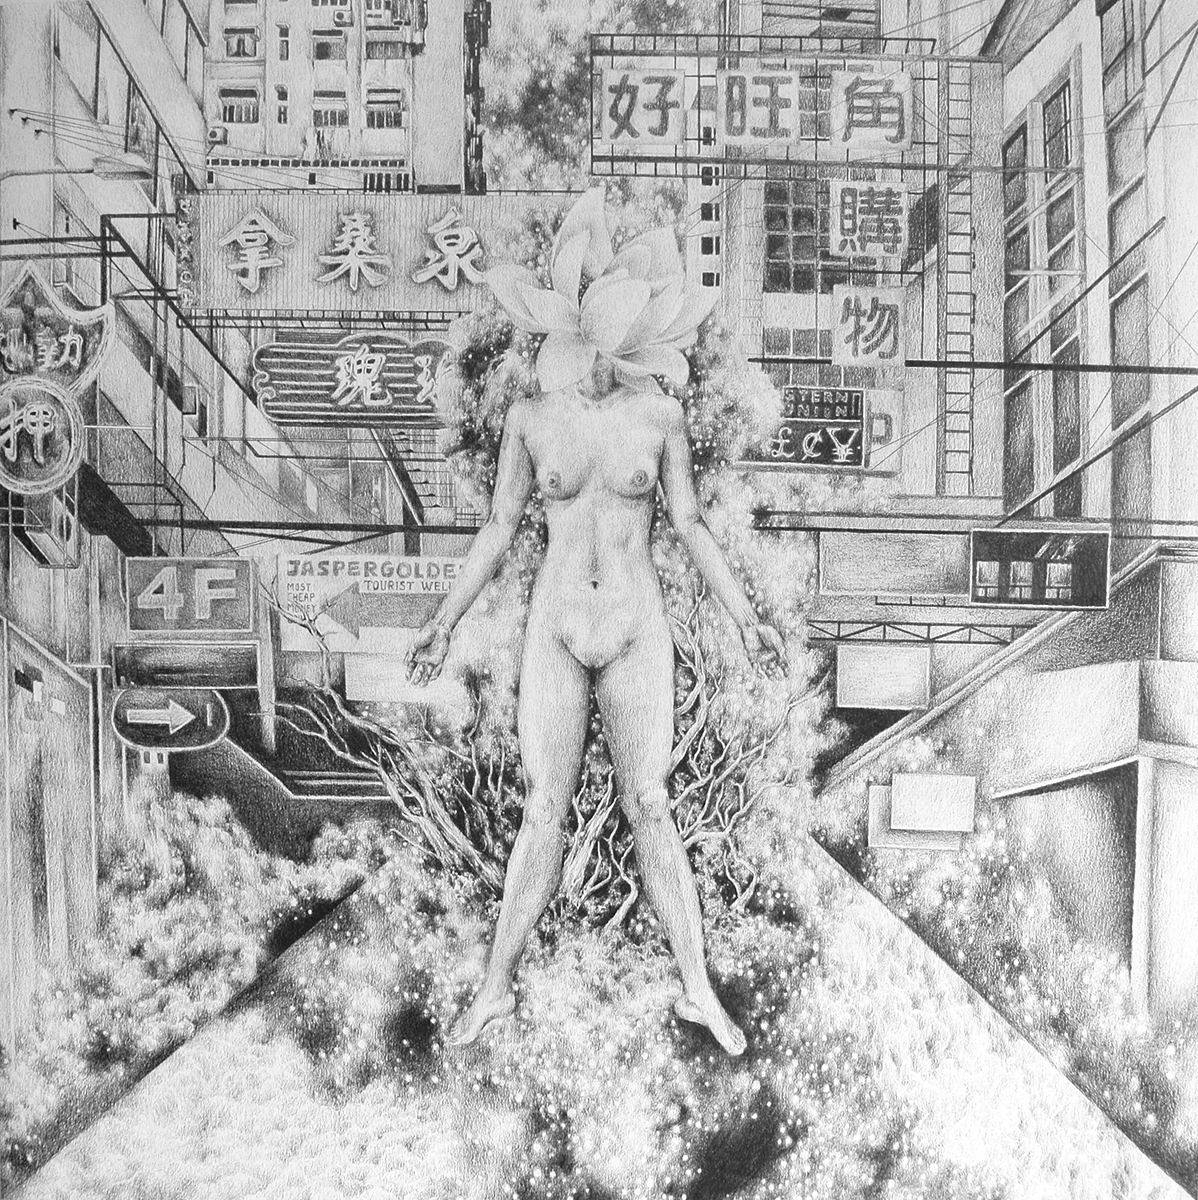 rebirth  created in participation of kult gallery's 'girls of the underworld' exhibition, with the idea of having artists make pieces in reaction to living in this modern world's fast-paced hyper culture.  pencil on paper may 2013